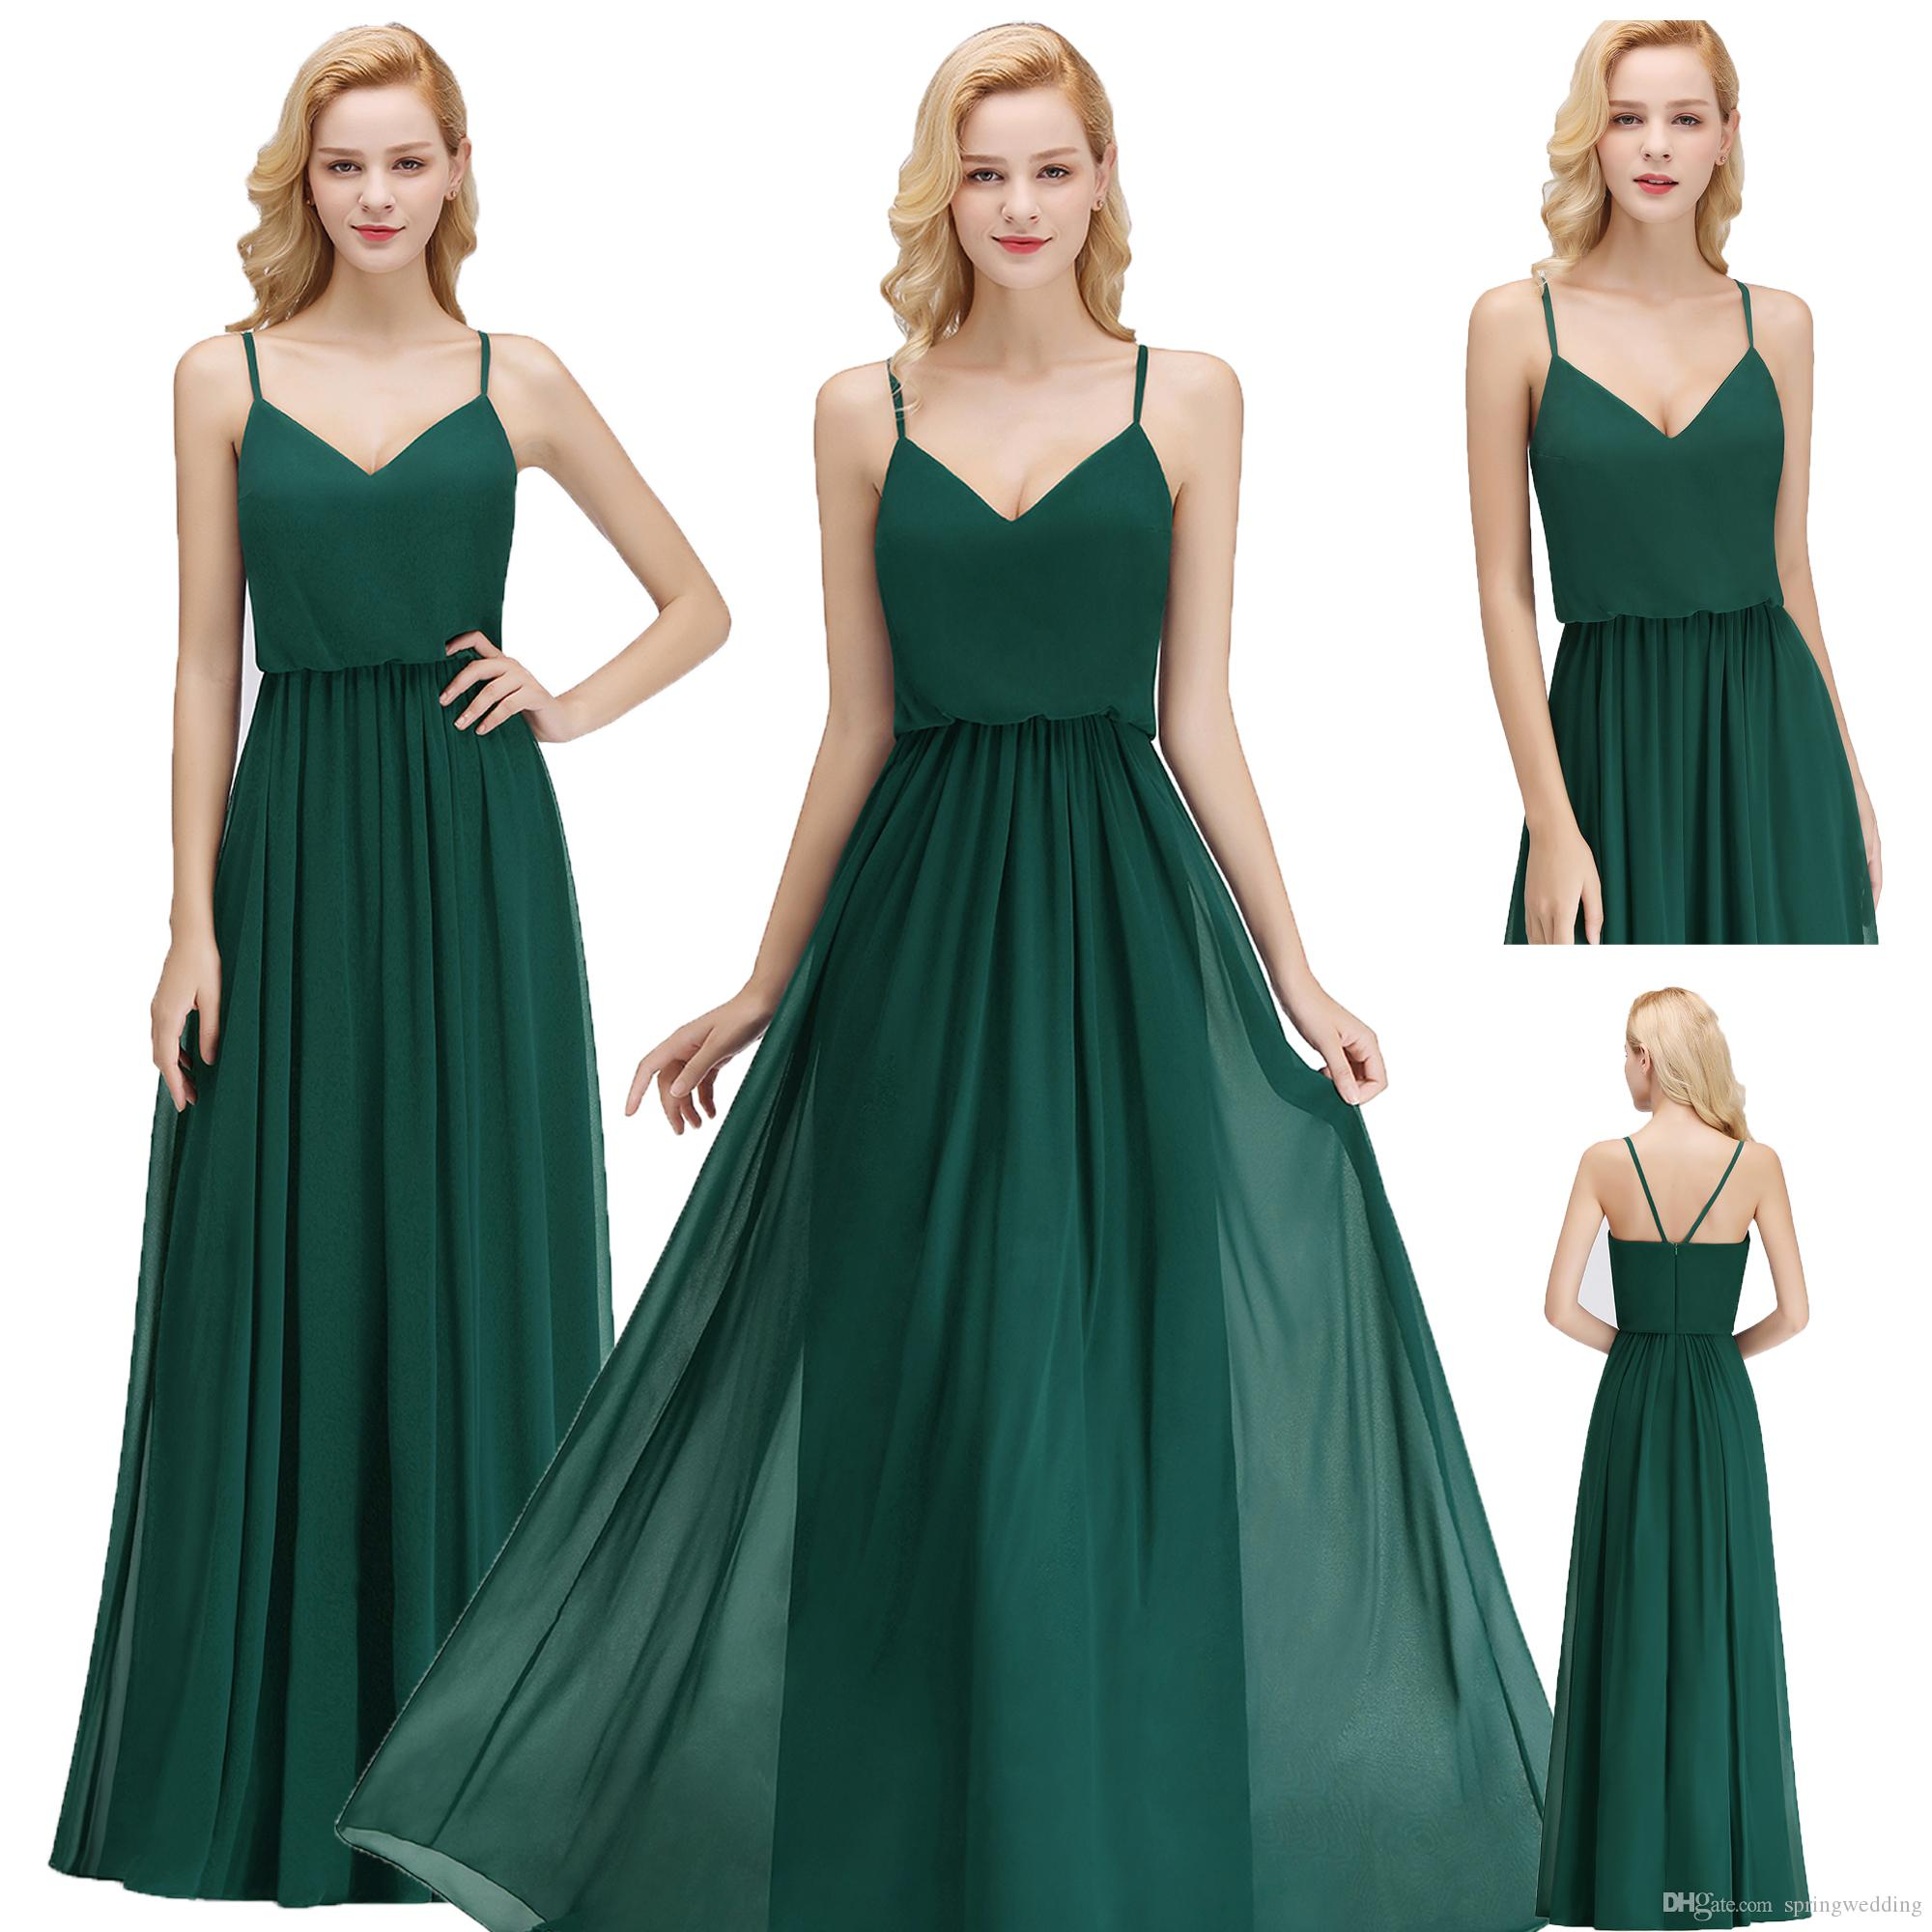 6e808679aef2 2018 Cheap Dark Green Bridesmaid Dresses A Line Chiffon Maxi With Spaghetti  Straps Wedding Guest Dress Maid Of Honor Gown BM0032 Cap Sleeve Bridesmaid  ...